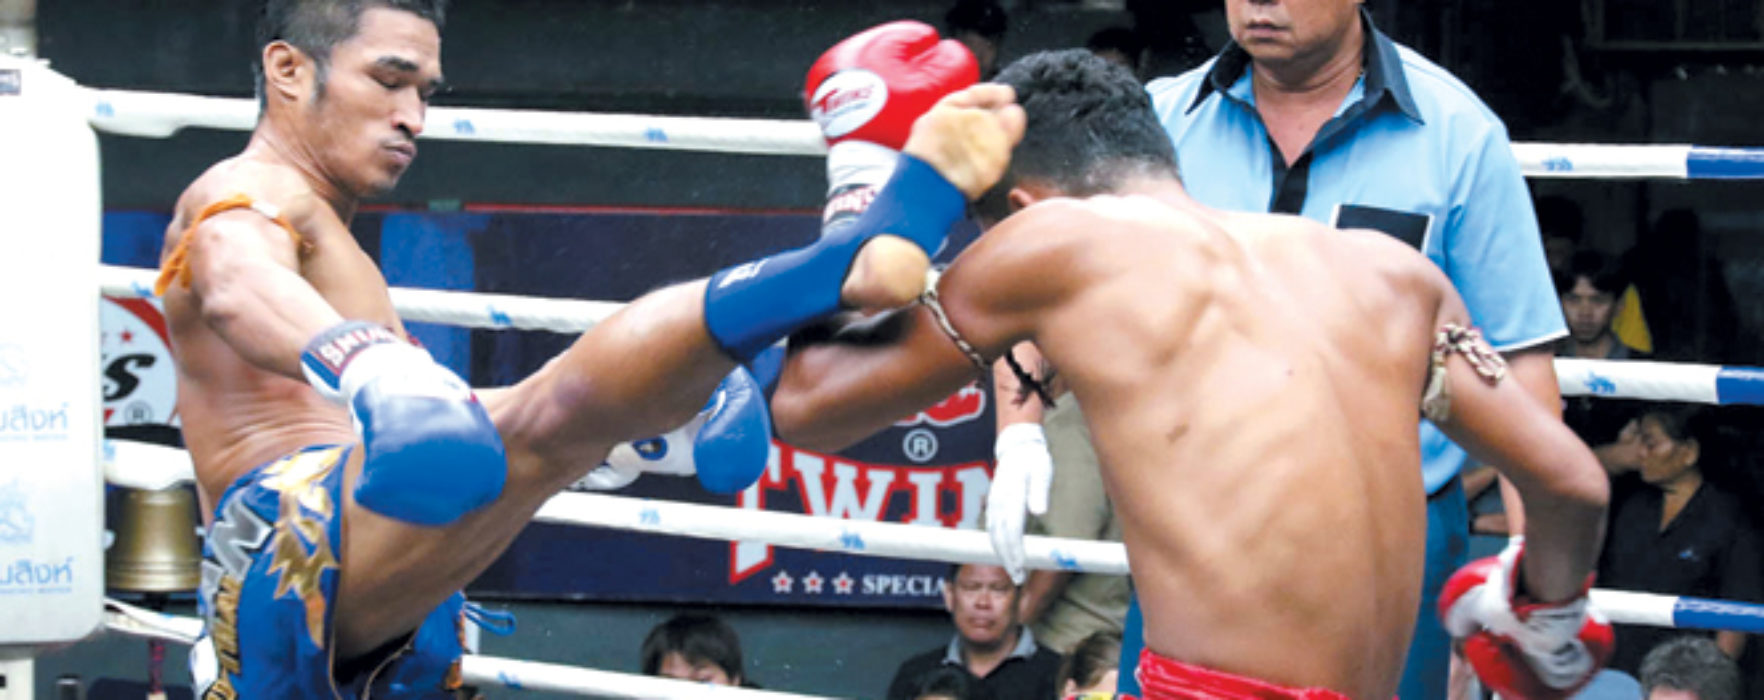 (English) Results / Videos: Klasuek Phetjinda Vs Phetthaksin Sor.Sommai etc – Rajadamnern – 15/08/2016